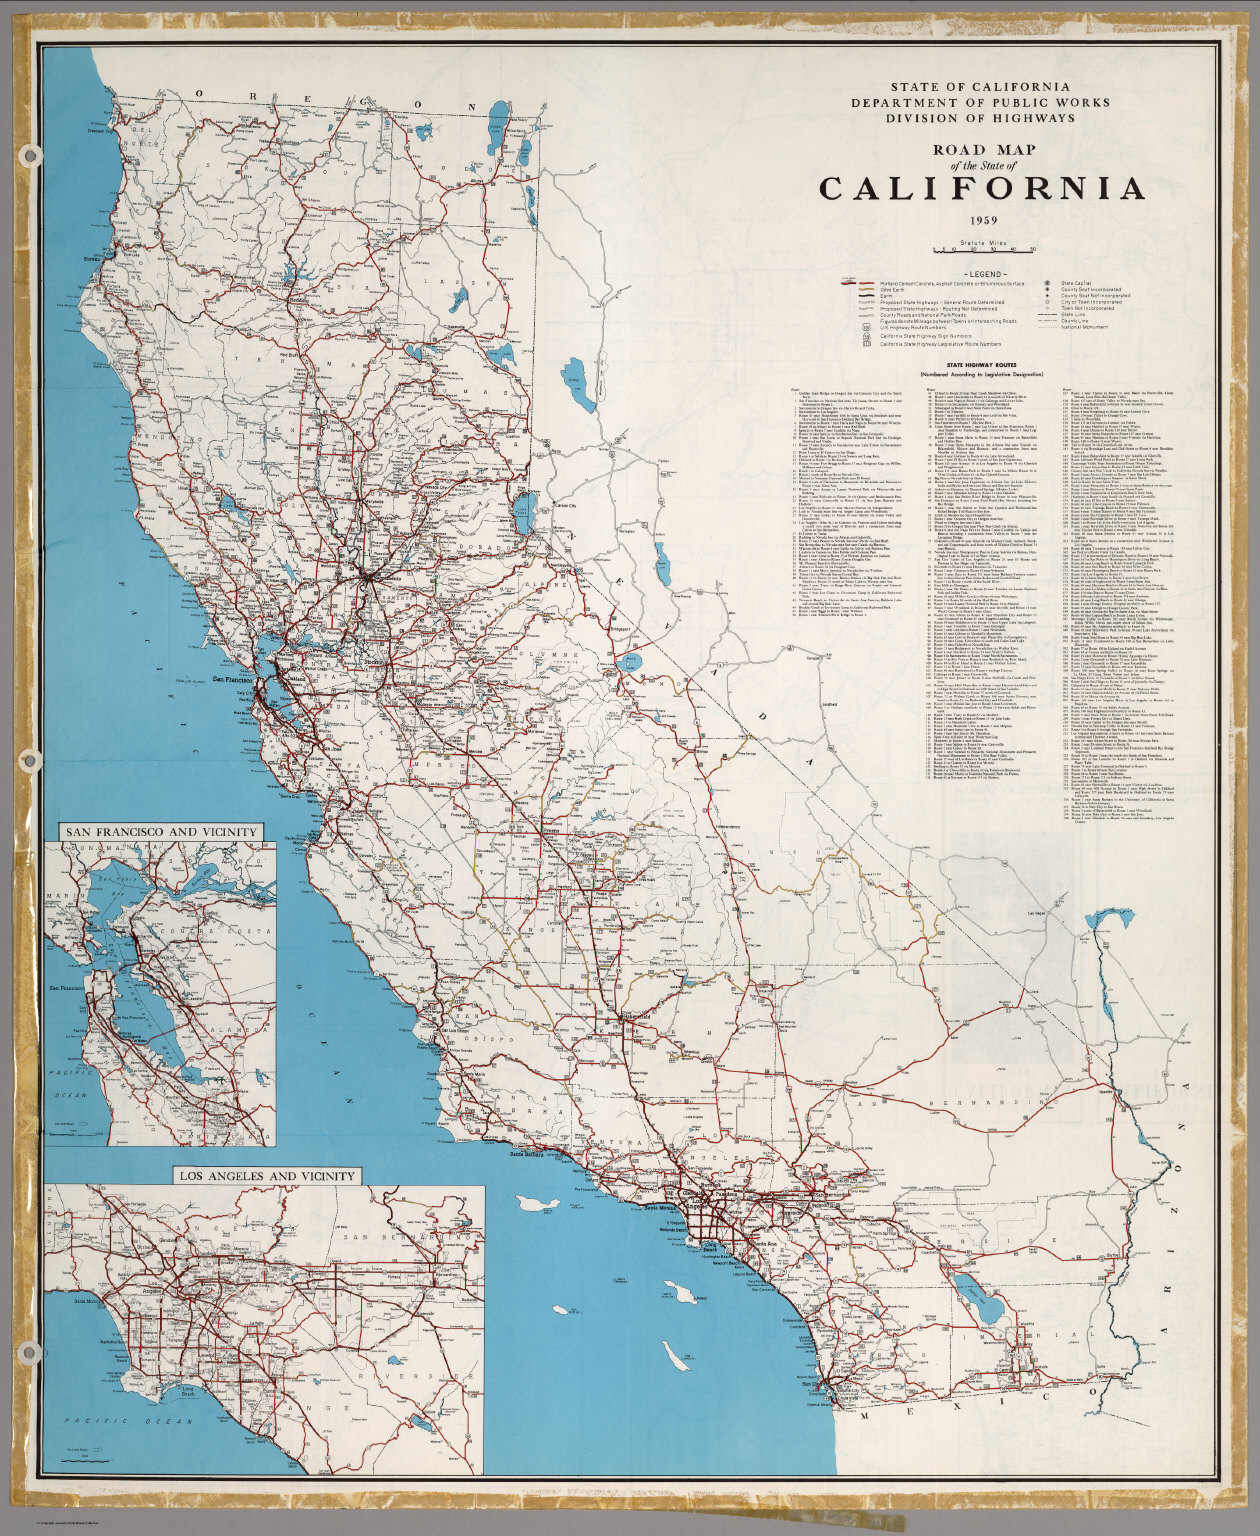 Road Map of the State of California, 1959.